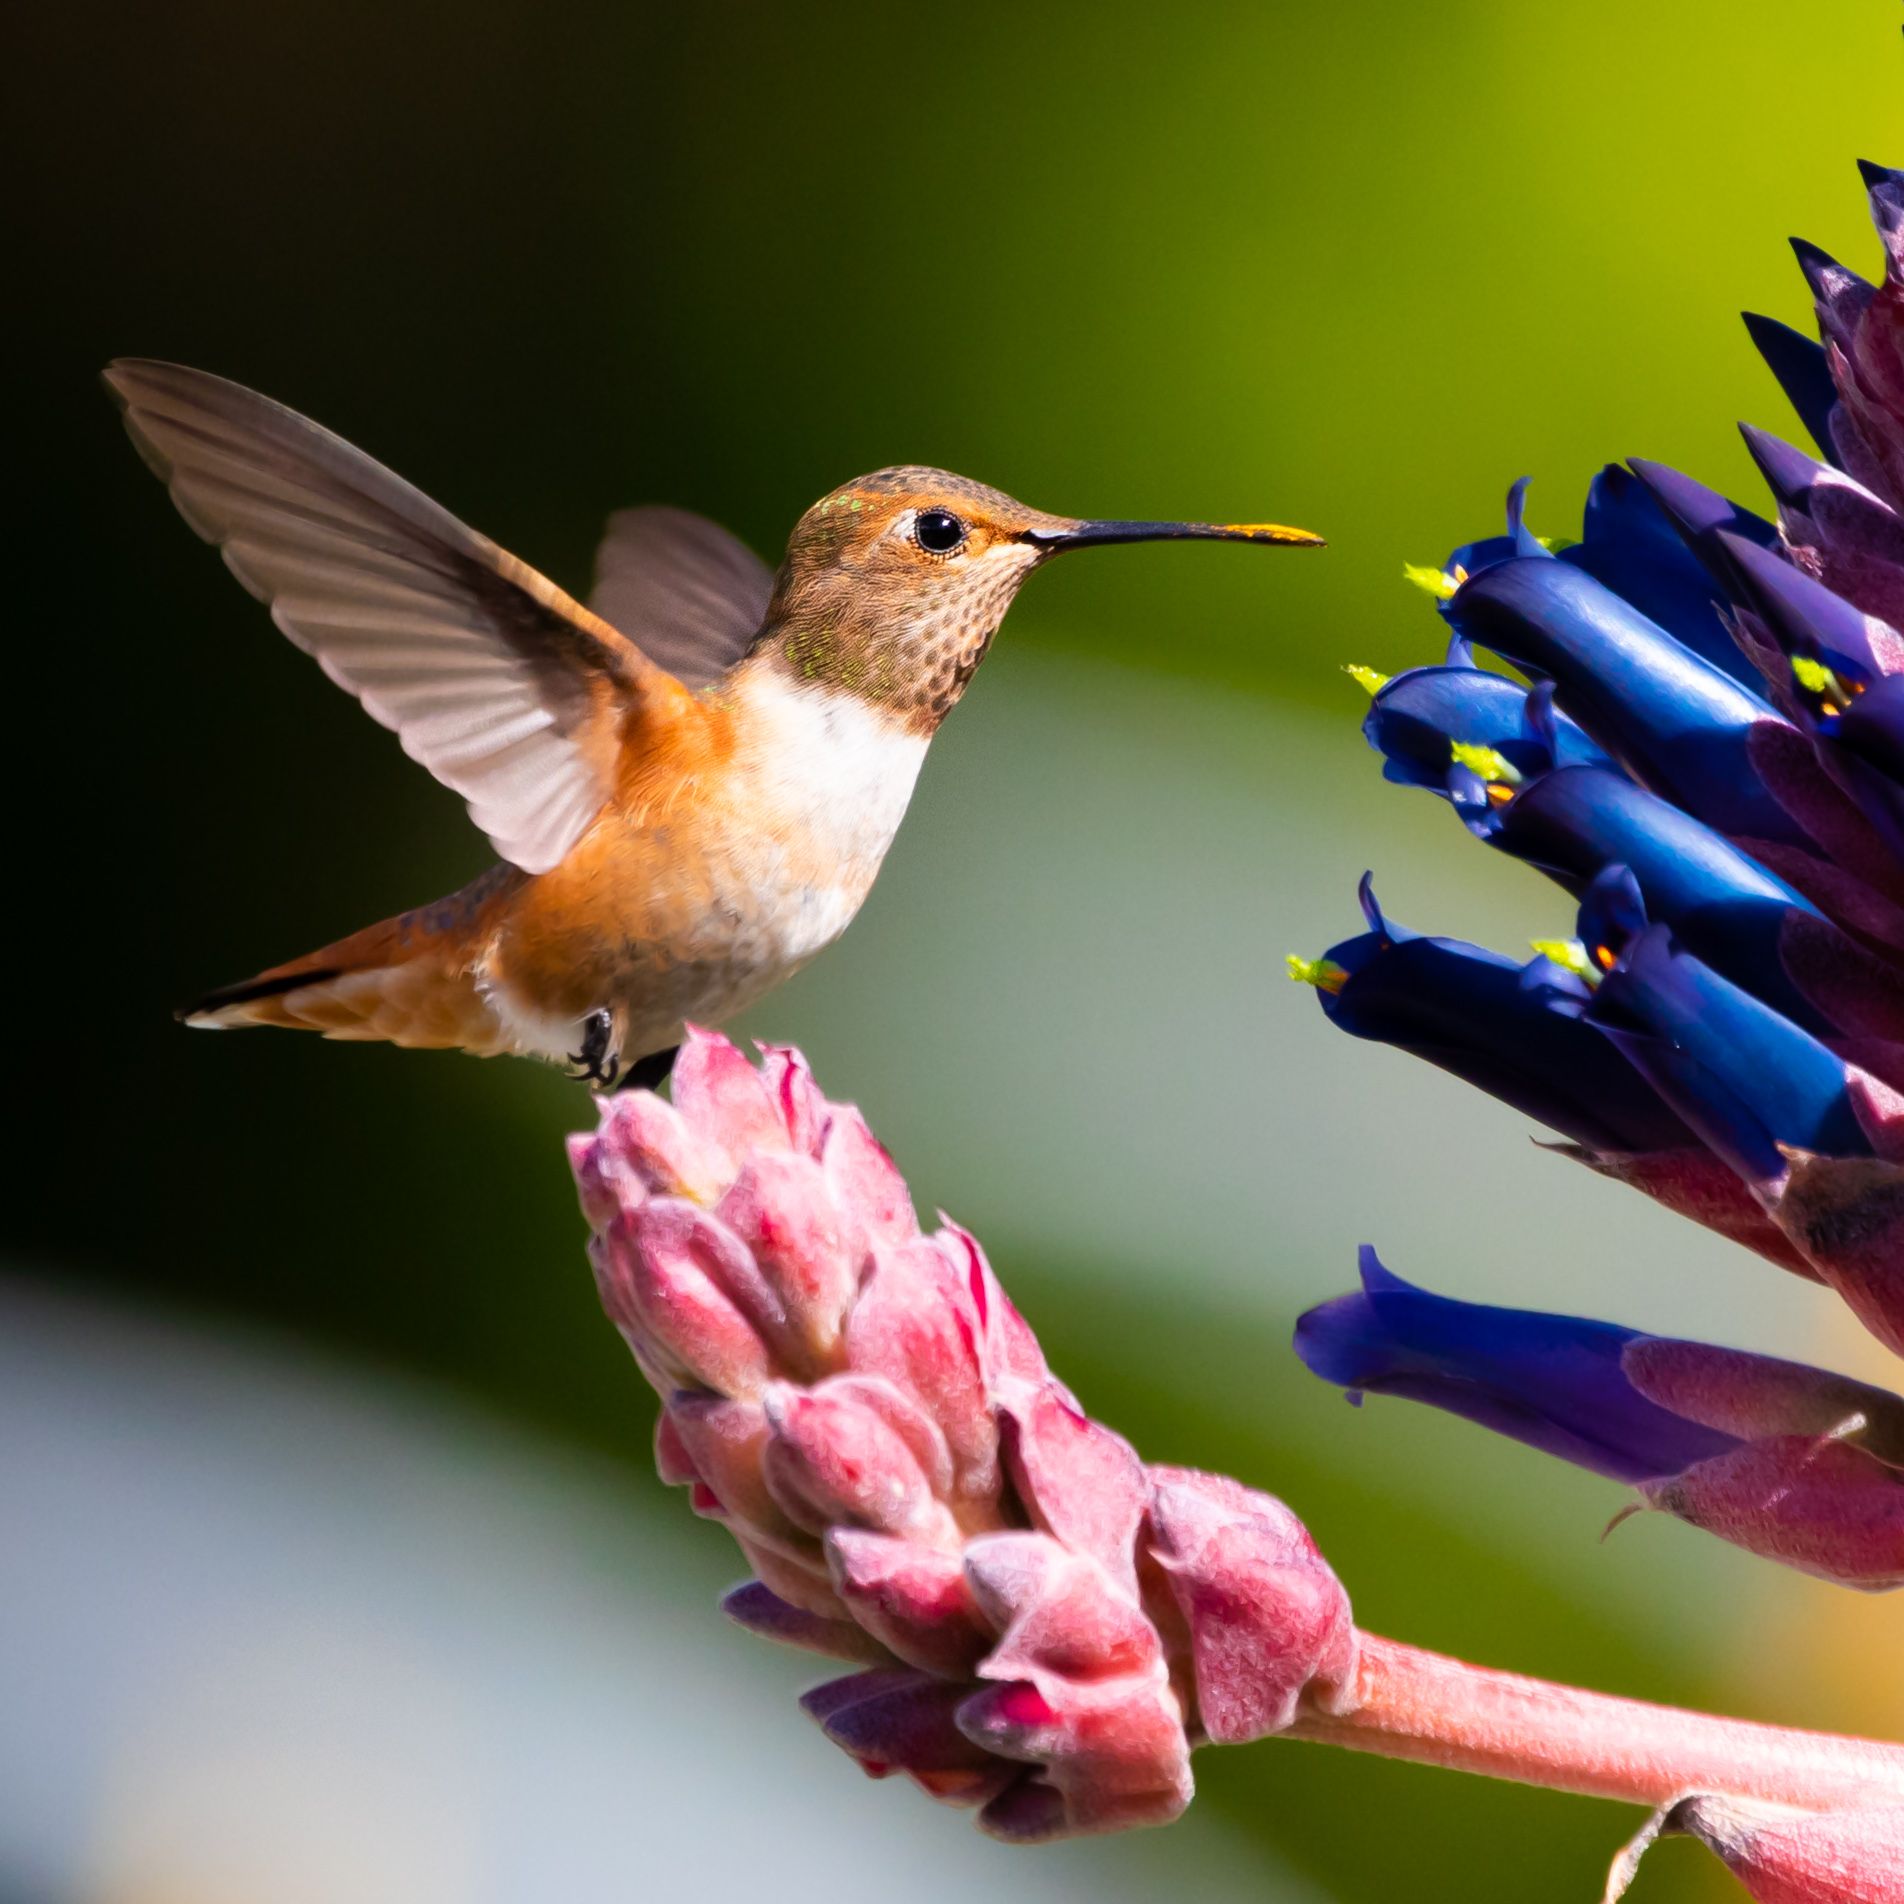 Hummingbird, Huntington Library, CA